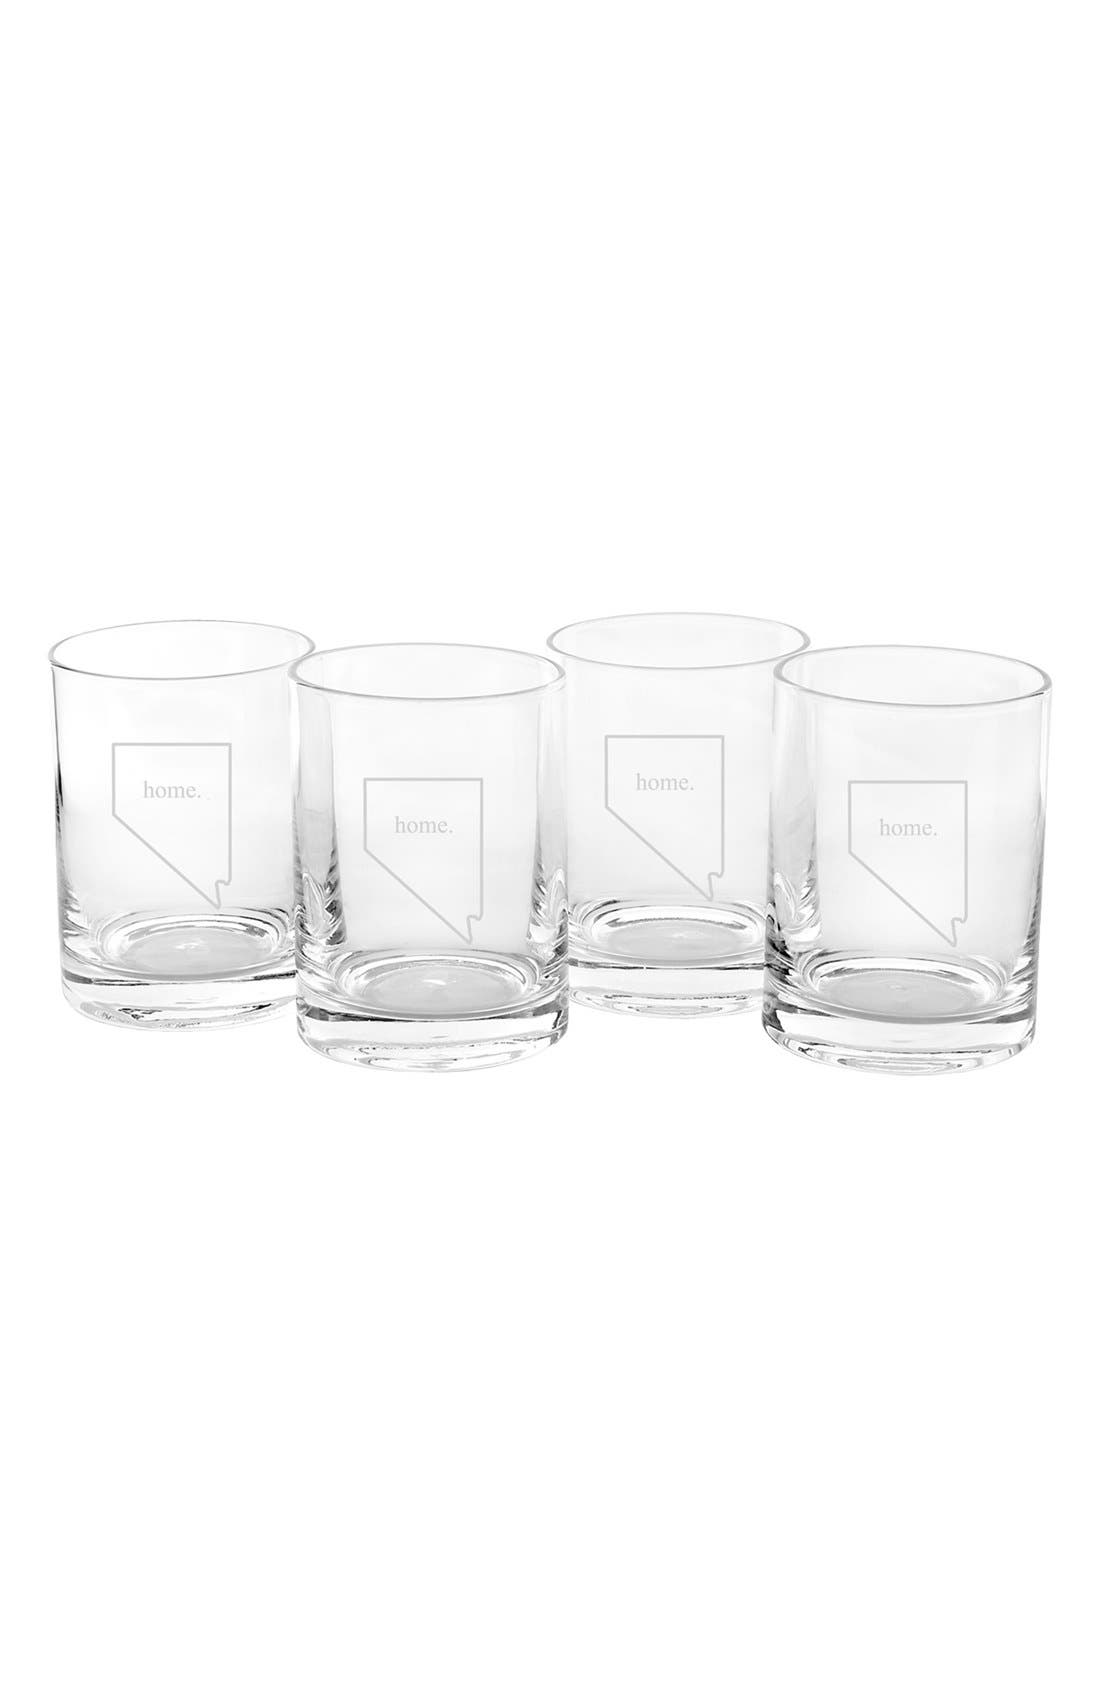 Main Image - Cathy's Concepts 'Home State' Glasses (Set of 4)